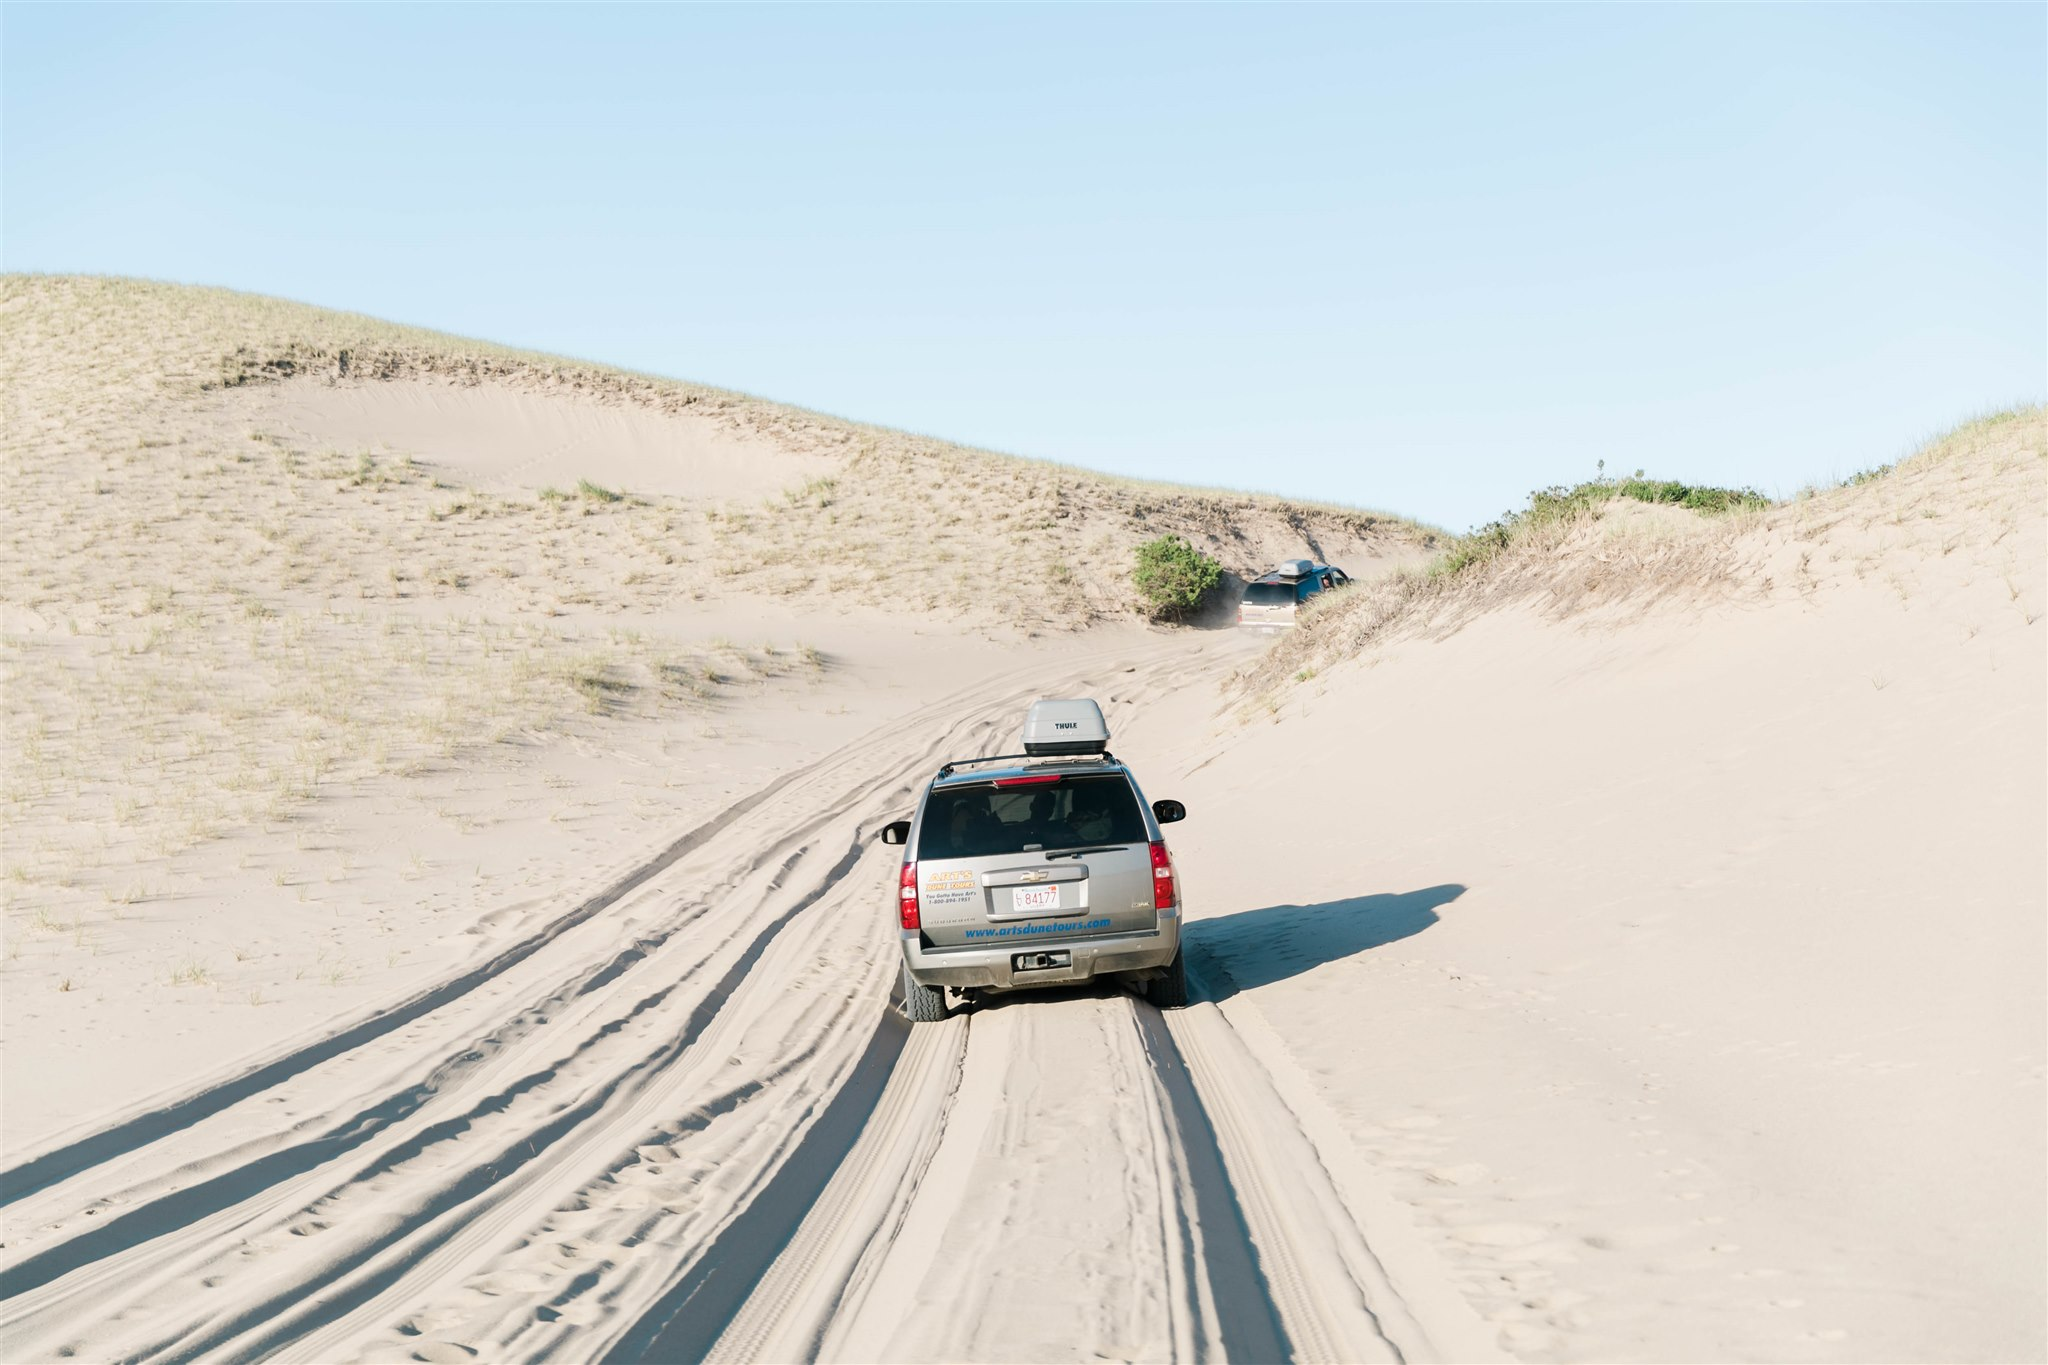 San Dunes - Ptown, Cape Cod with IFAW + Kin Travel